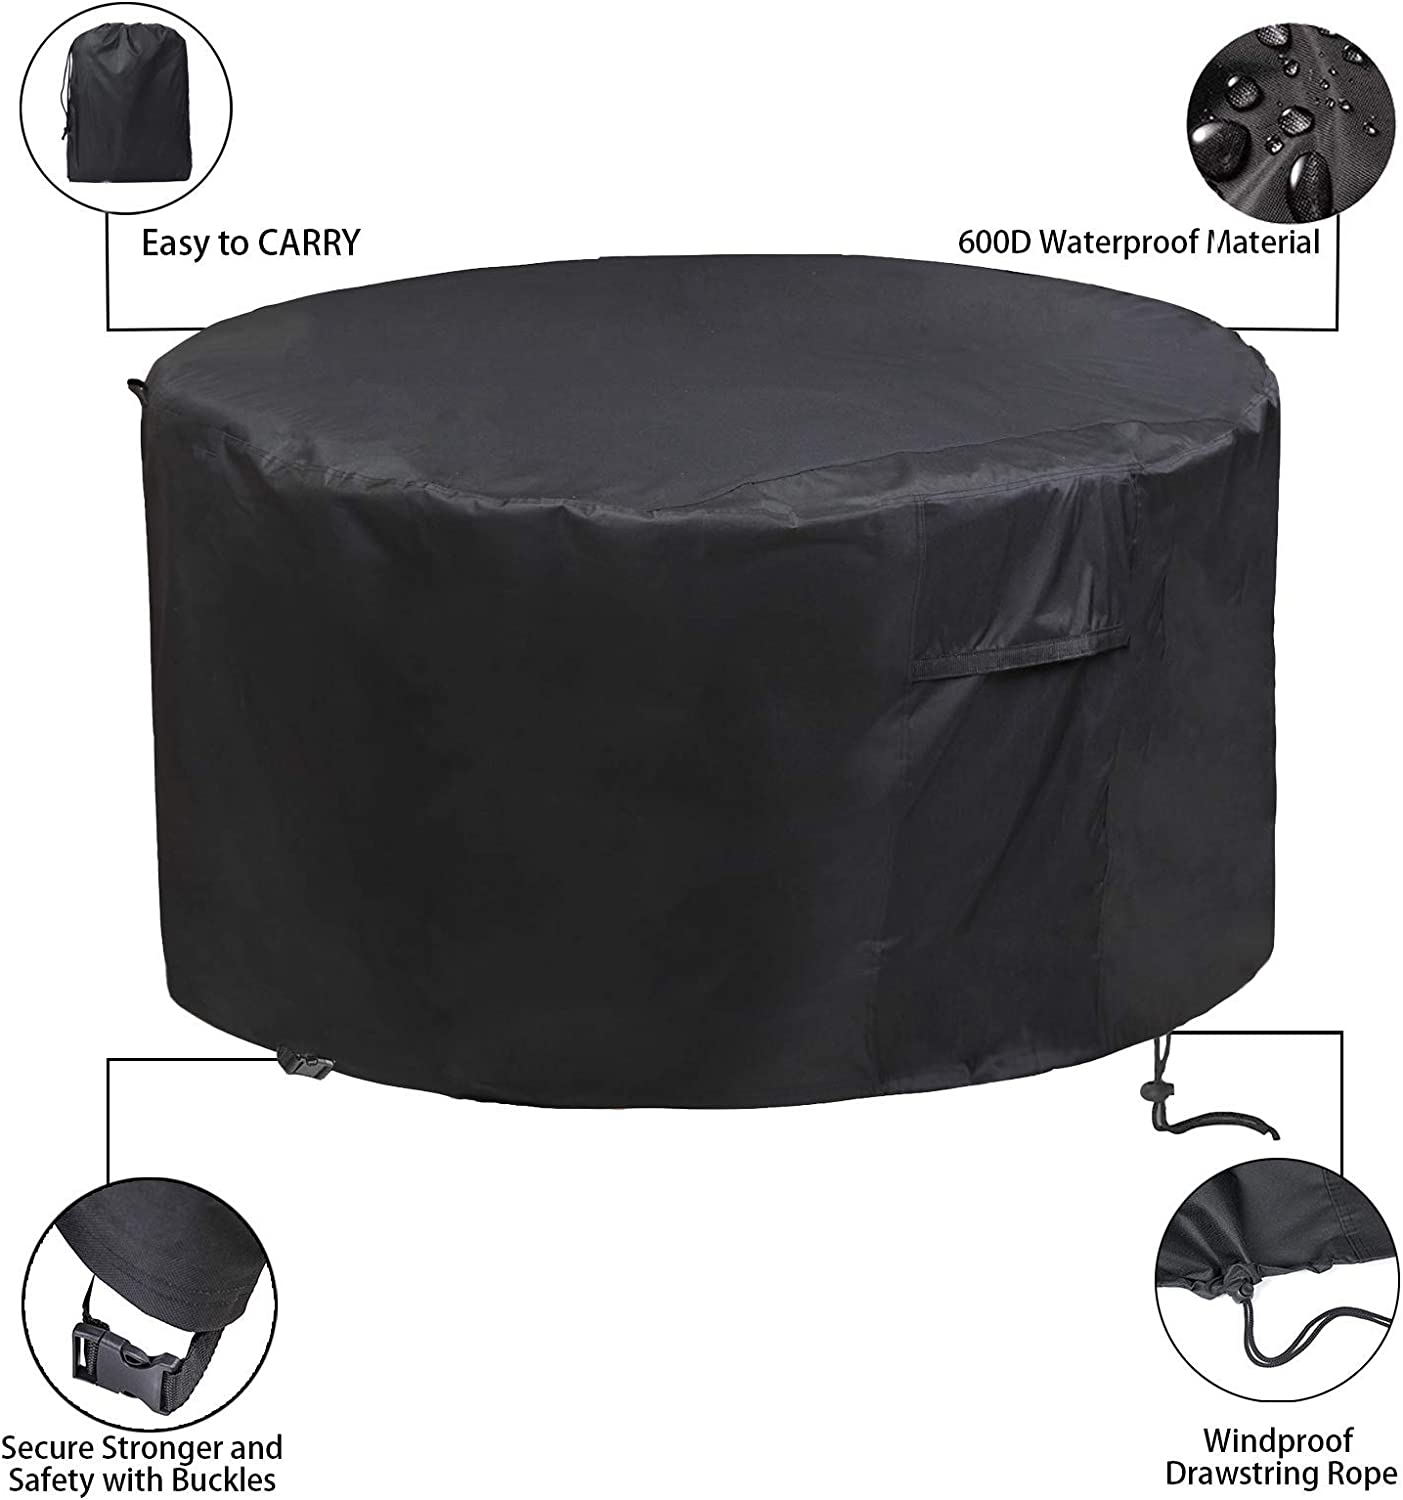 Patio Furniture Covers Waterproof Heavy Duty Oxford Protection Windproof Anti-UV Patio Set Table Covers 600D Round Outdoor Garden Table Covers CHUSSTANG Garden Furniture Covers /Ø208x91cm